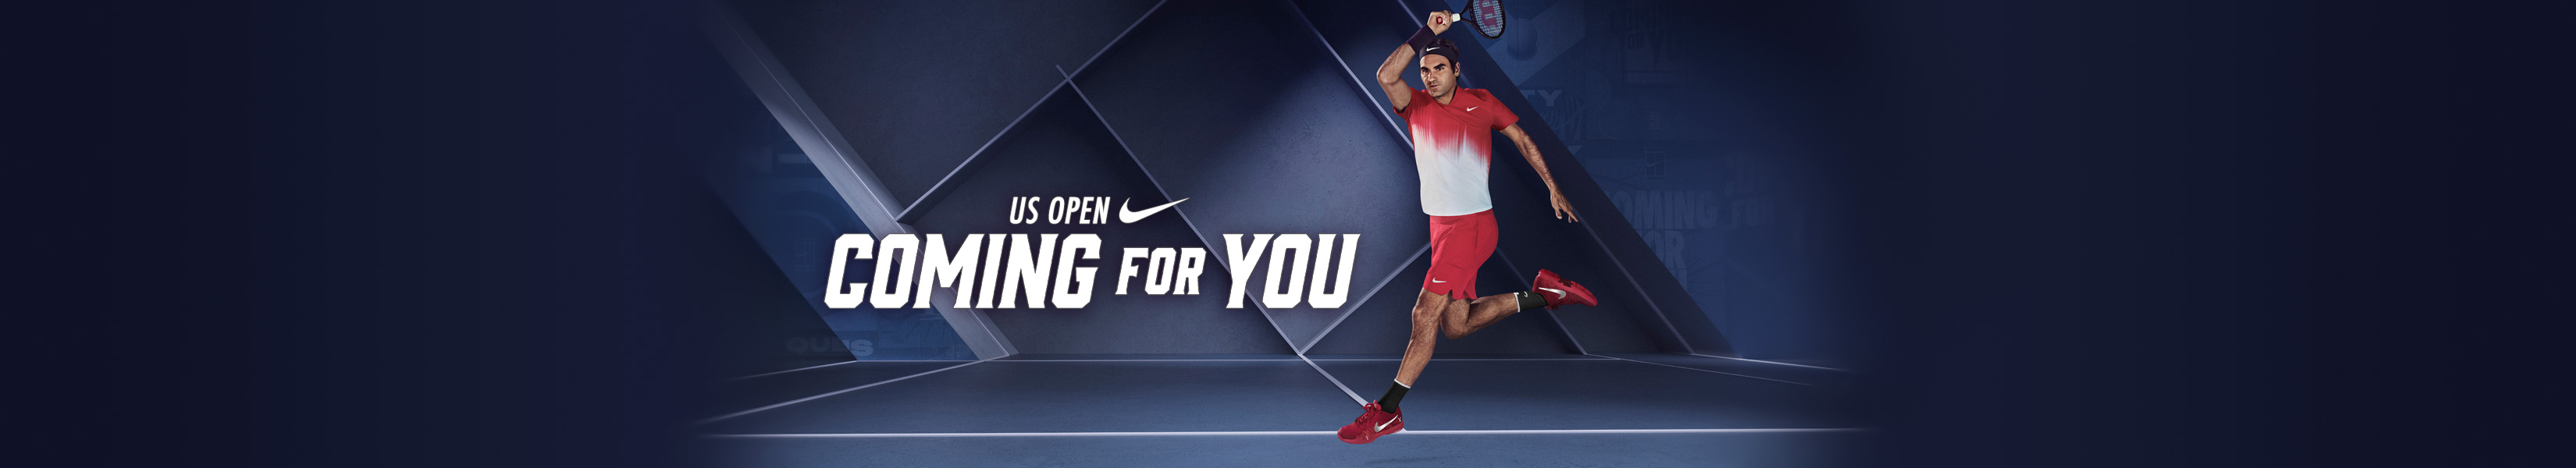 Nike Tennis US Open Collection